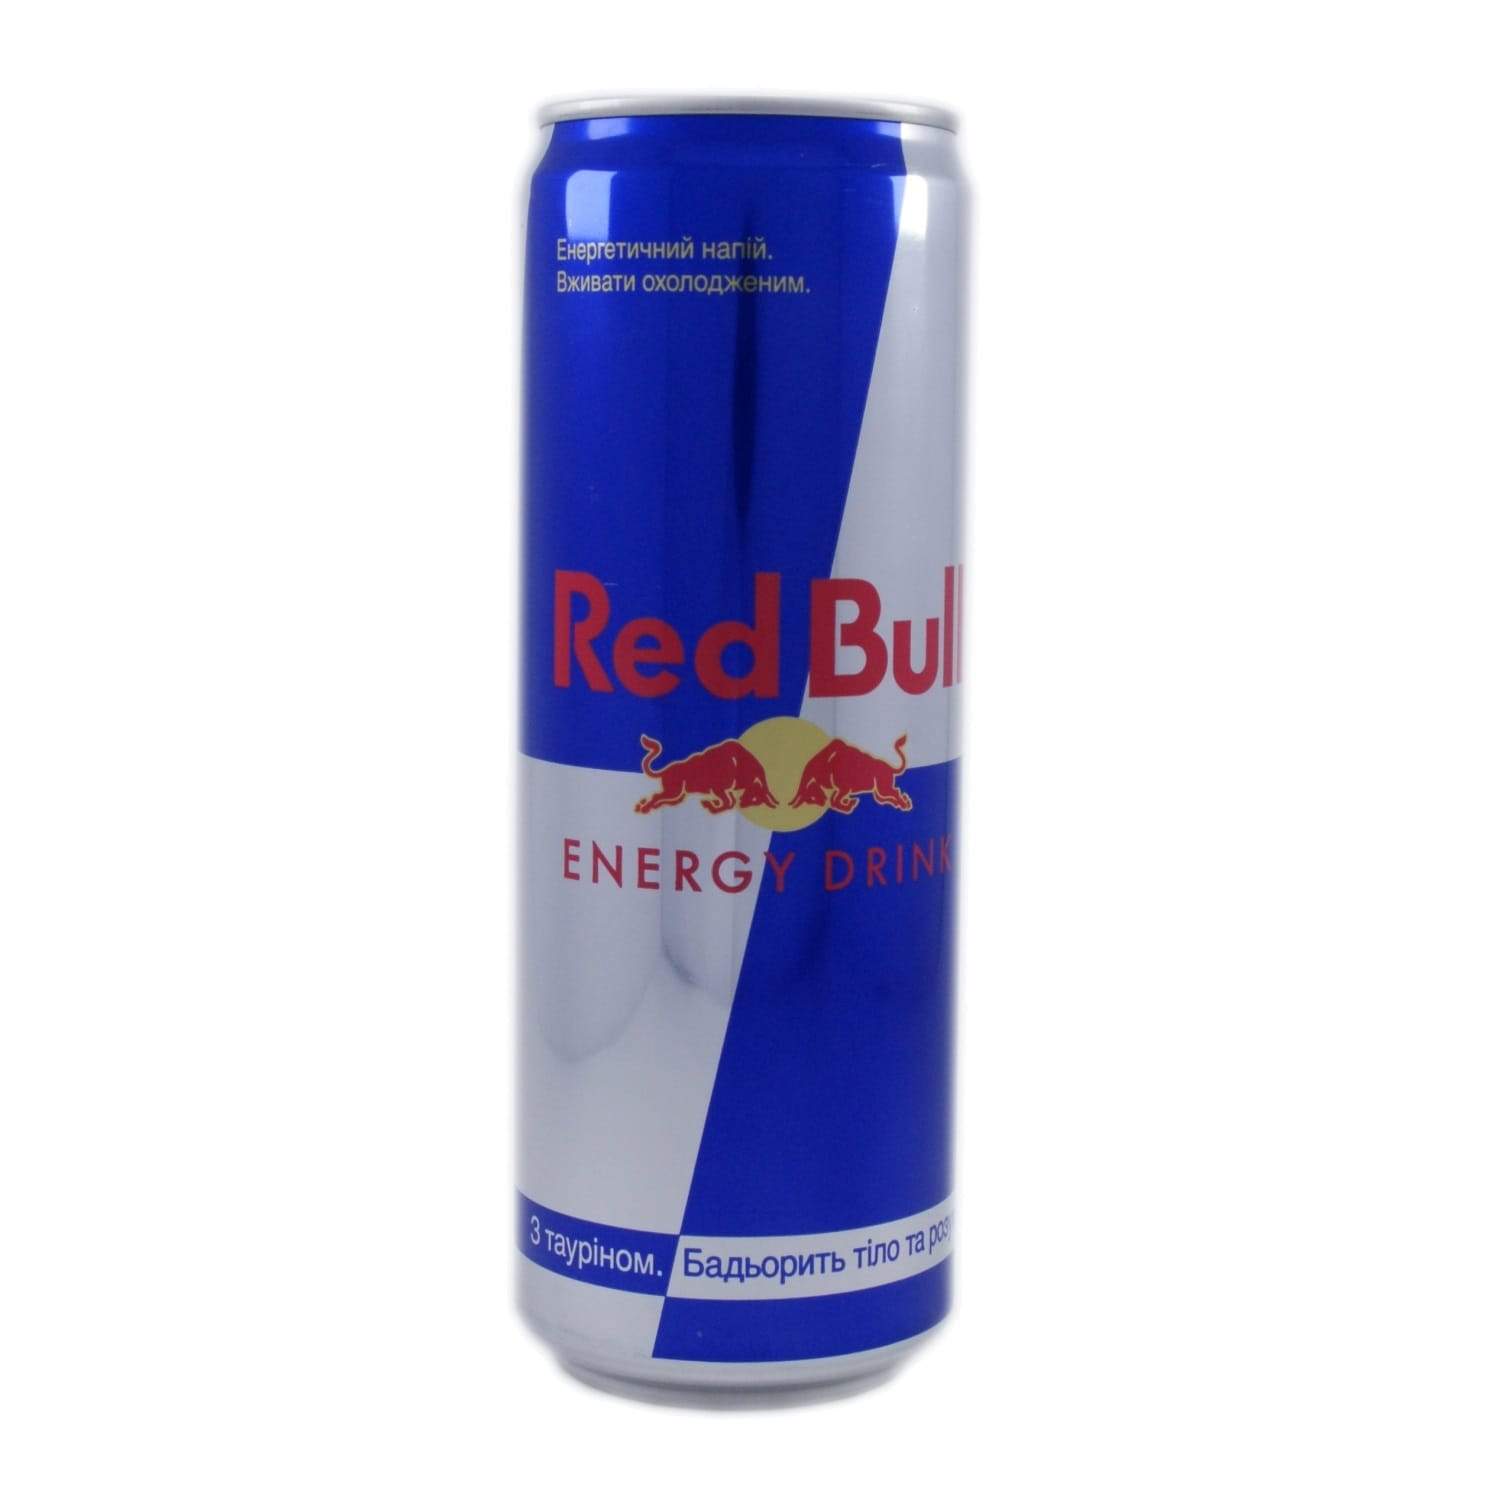 Essays on Red Bull